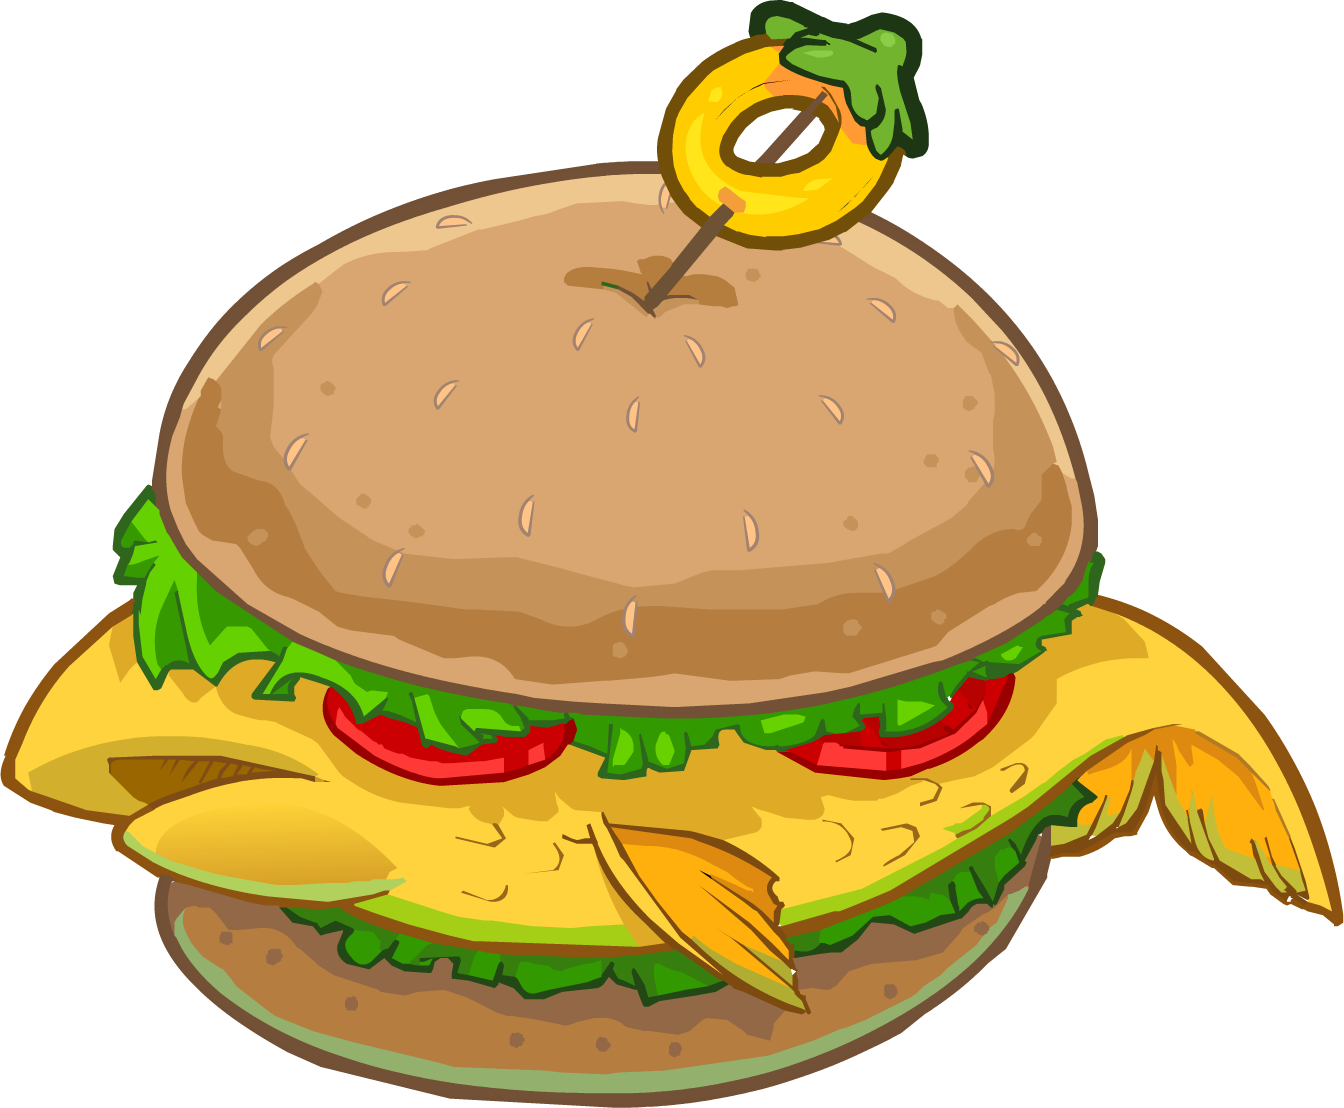 Burgers and penguins club. Burger clipart fish